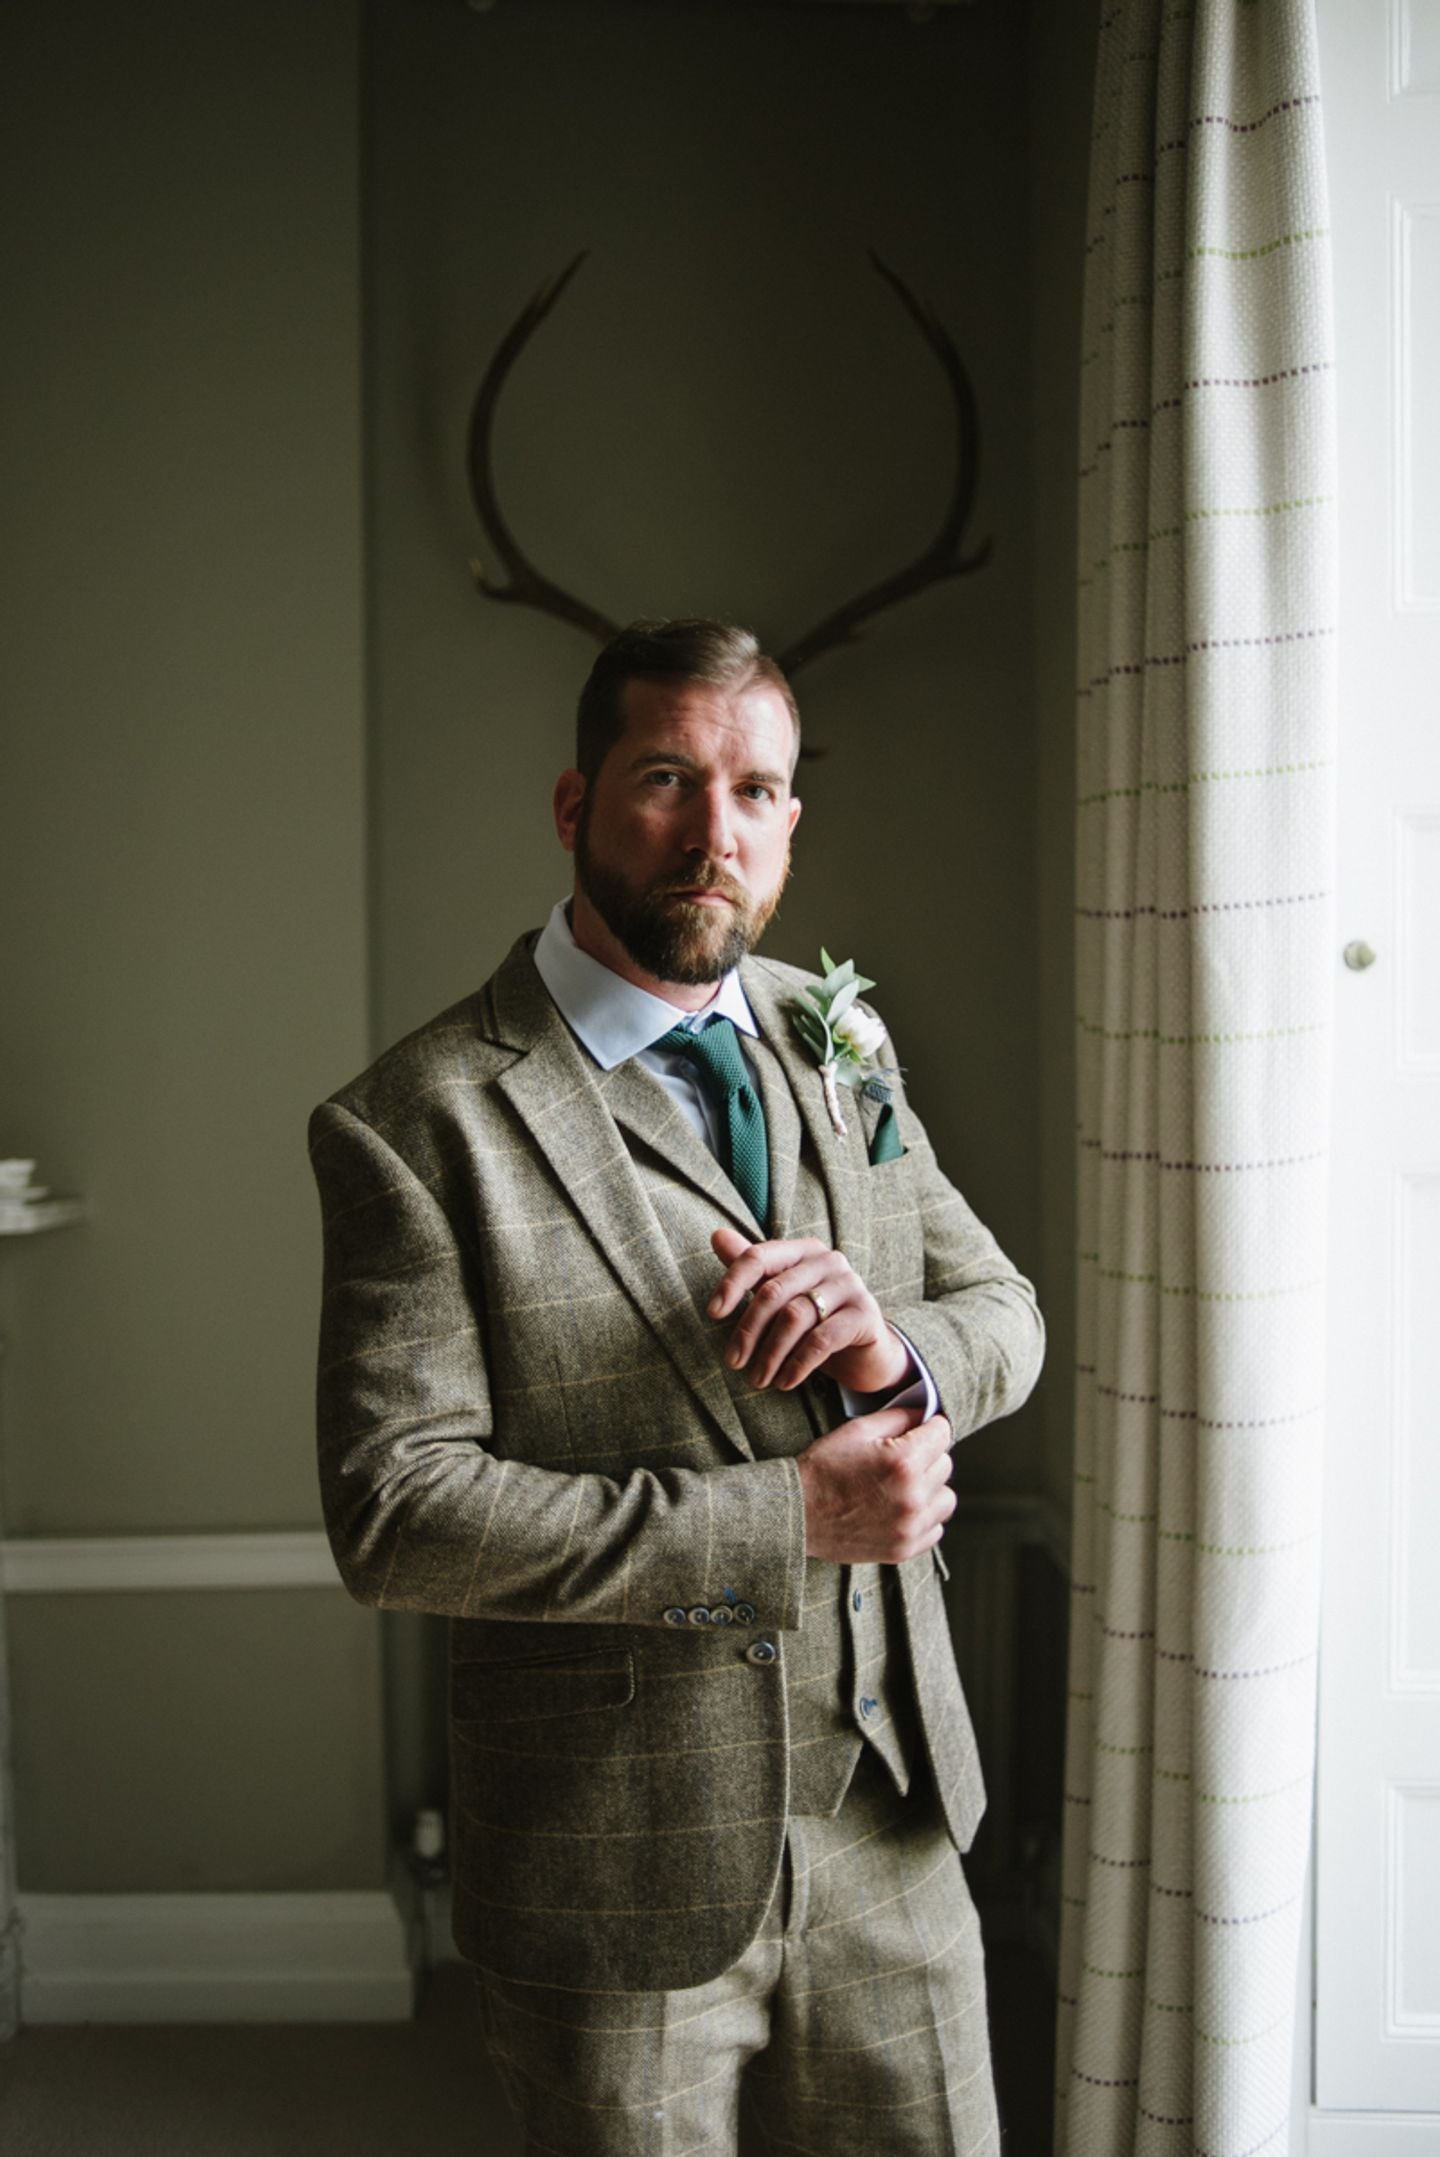 Groom portrait with stag horns, country house wedding